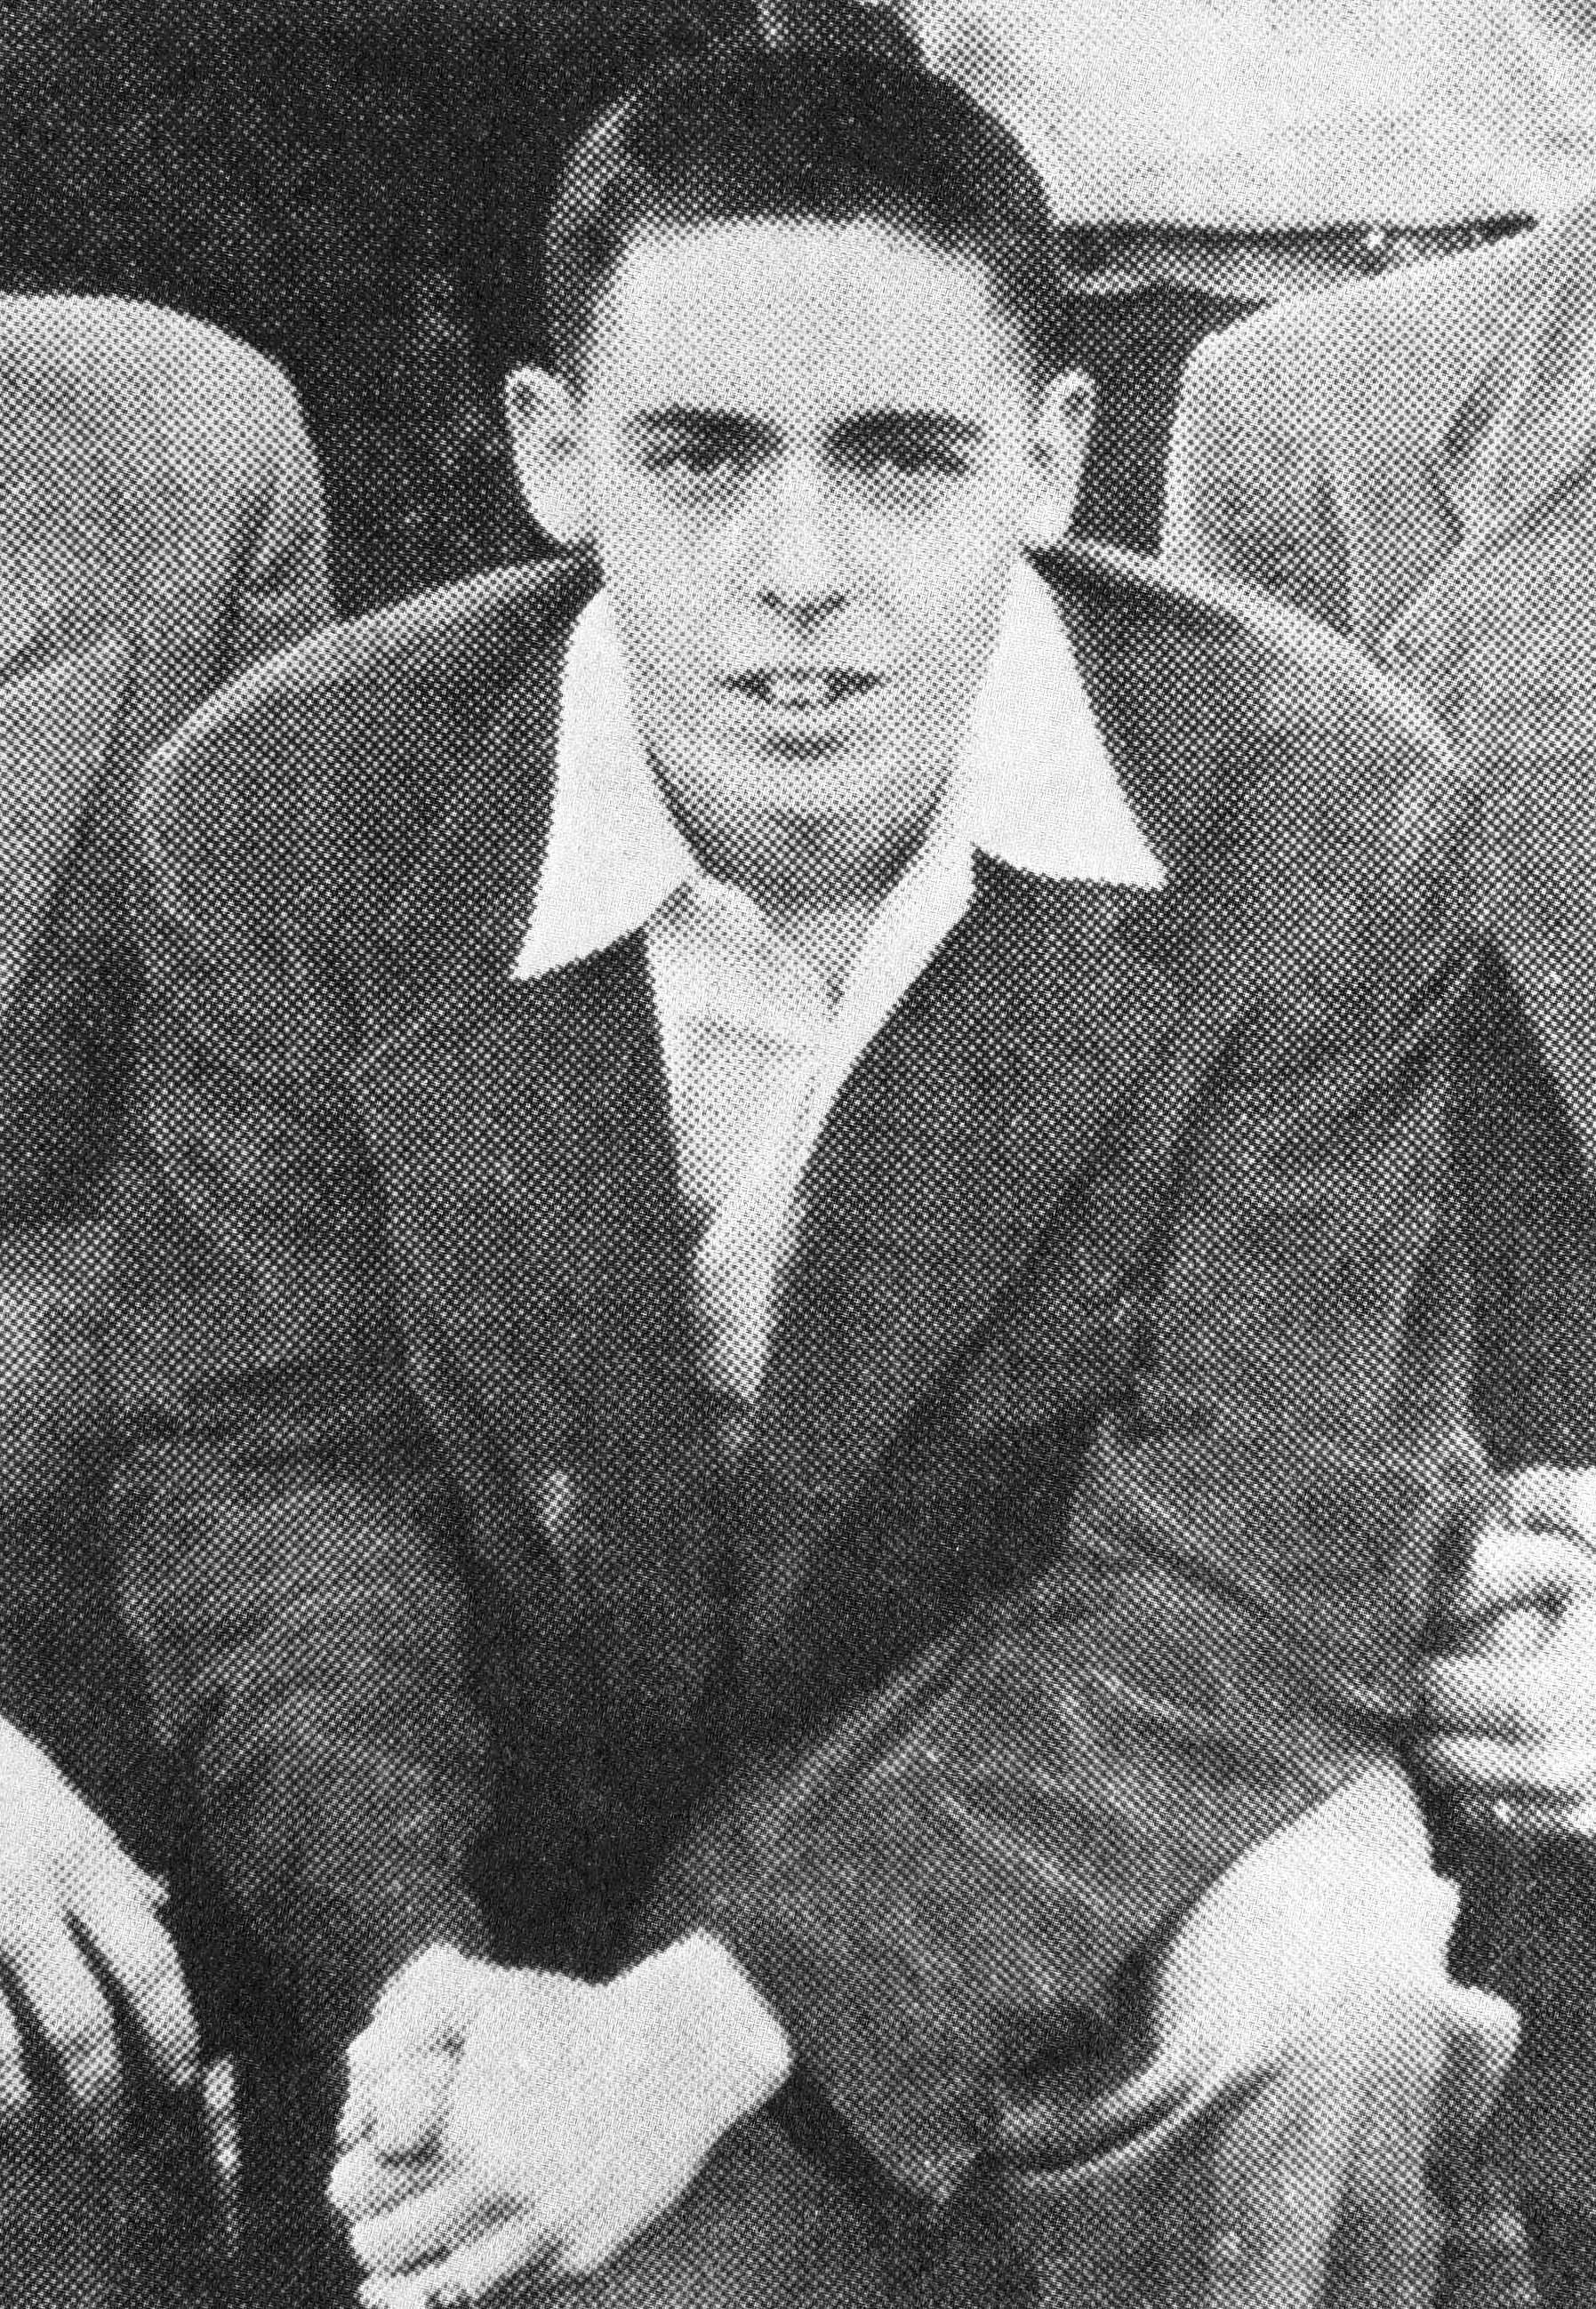 Pynchon in a 1953 yearbook picture. Very few photographs of the author are known to exist, with most dated to the mid-1950s.